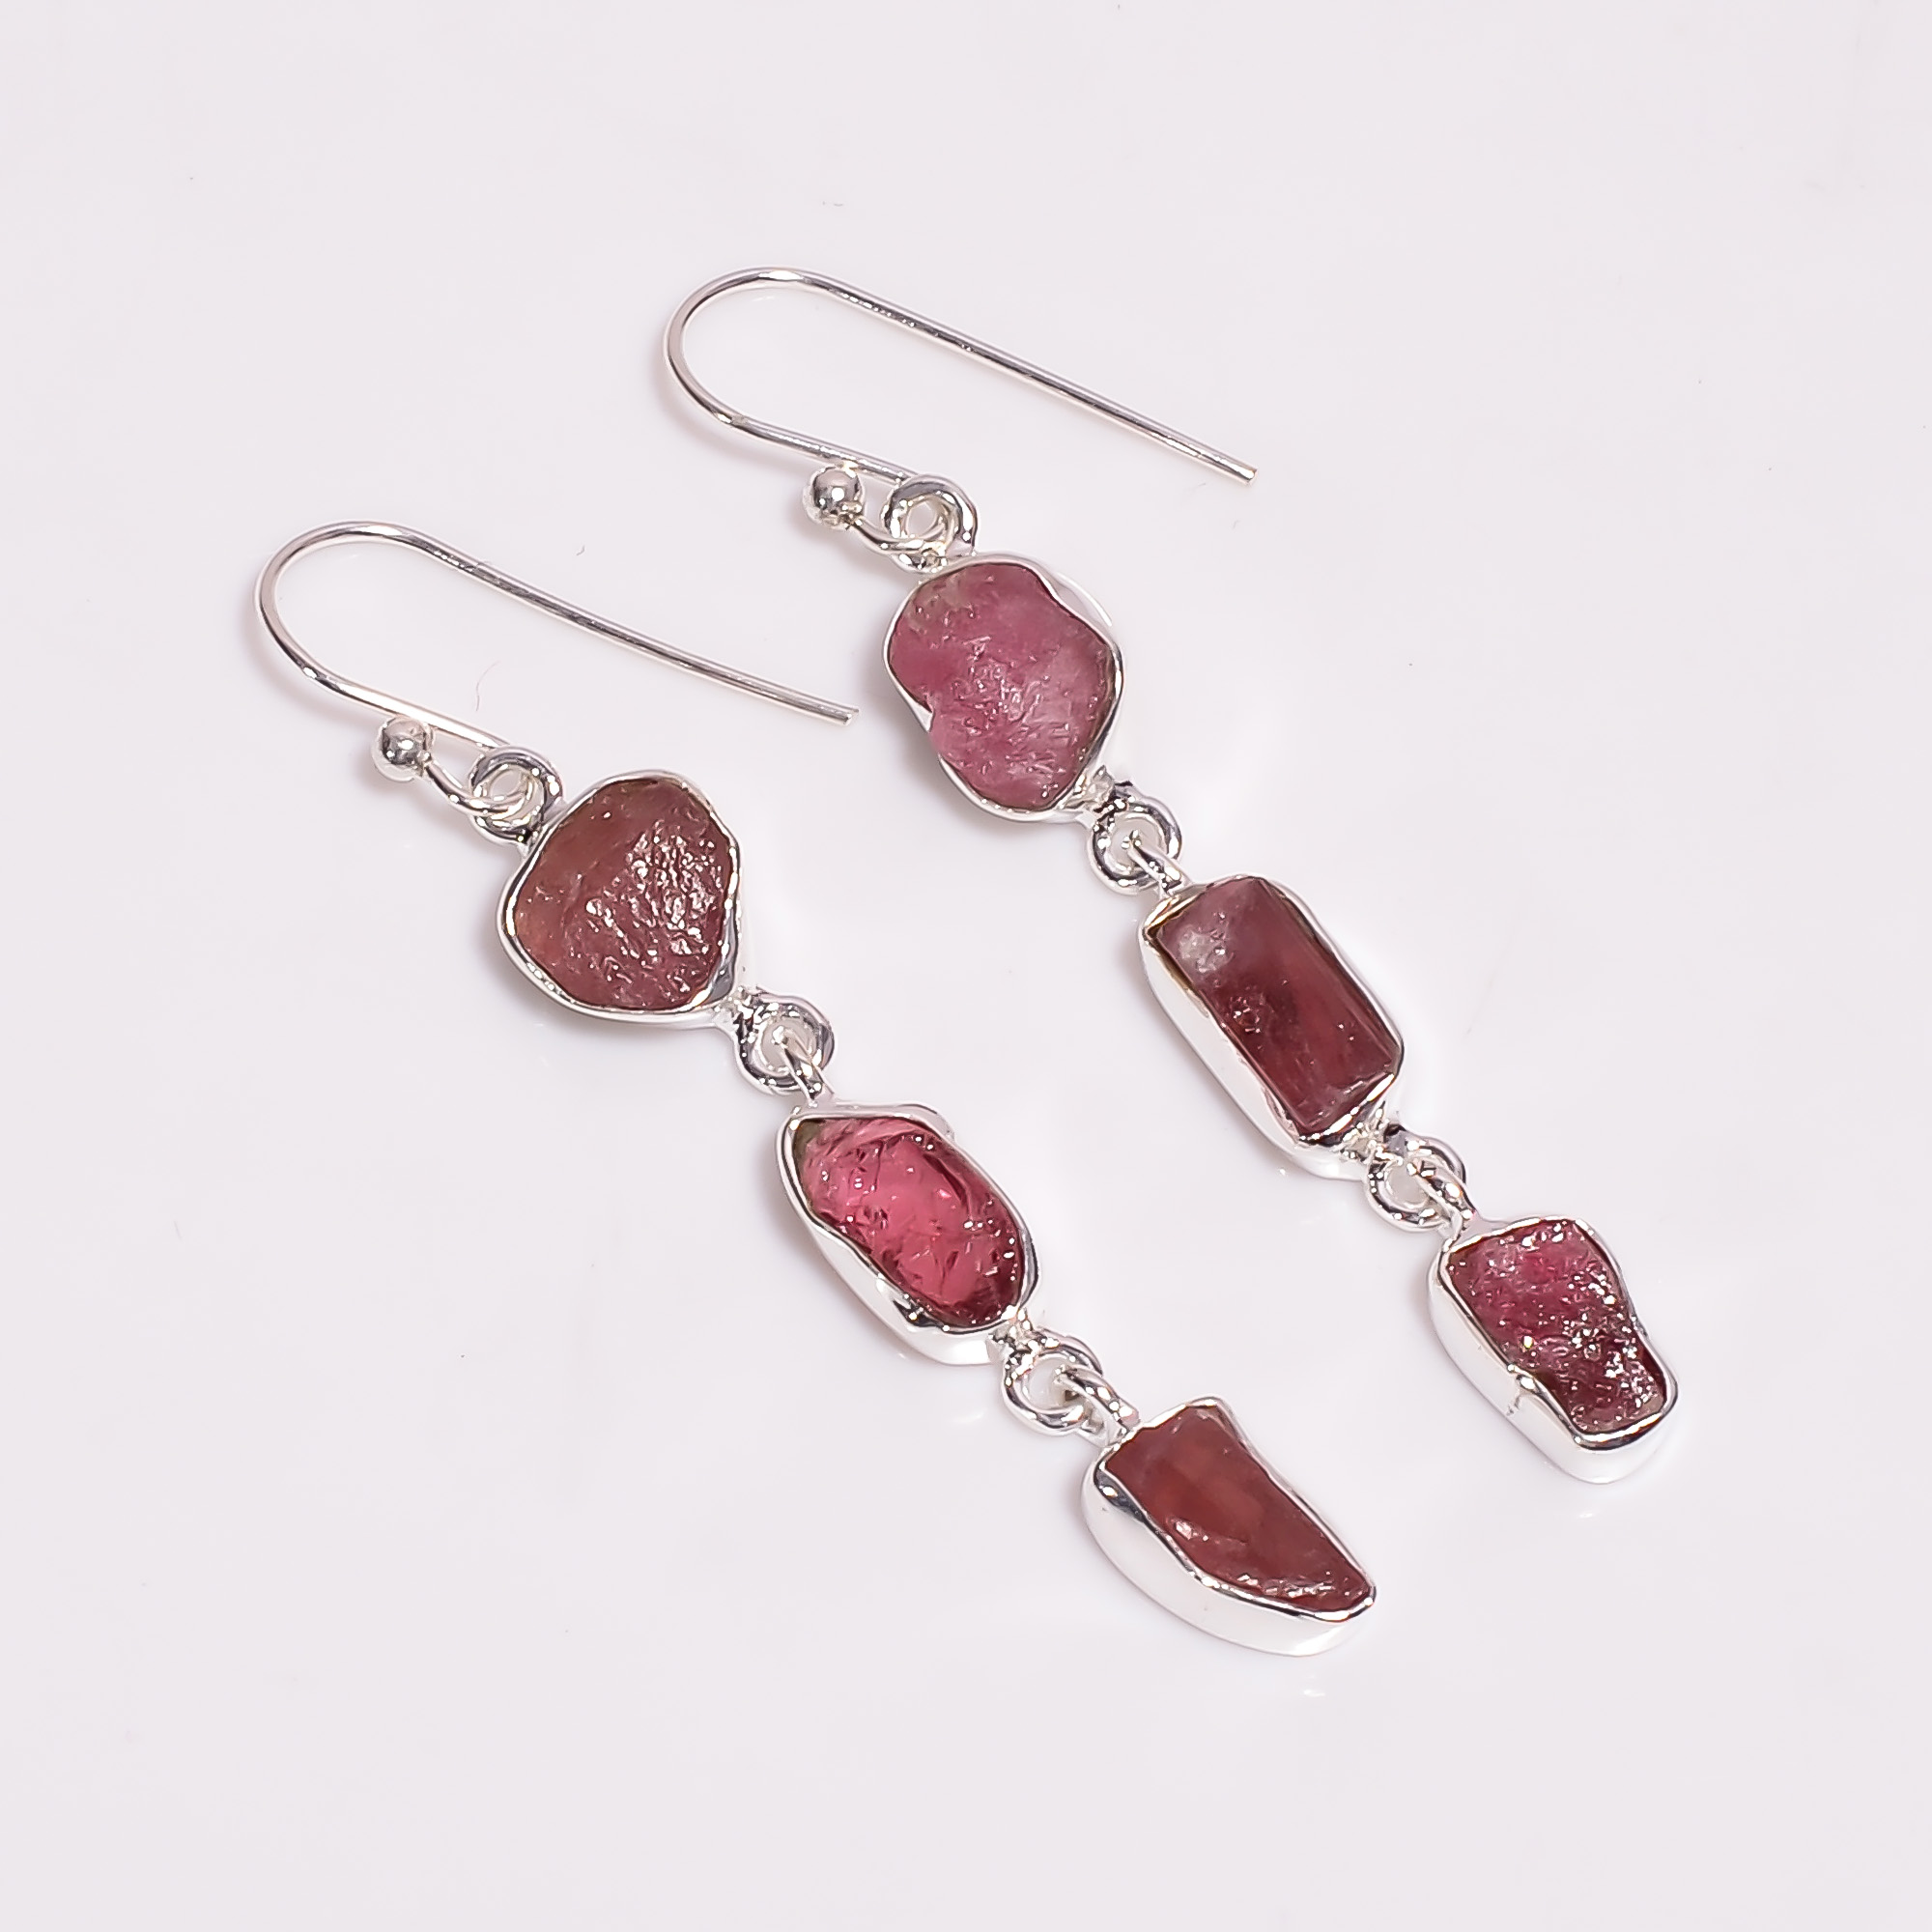 Natural Pink Tourmaline Raw Gemstone 925 Sterling Silver Earrings